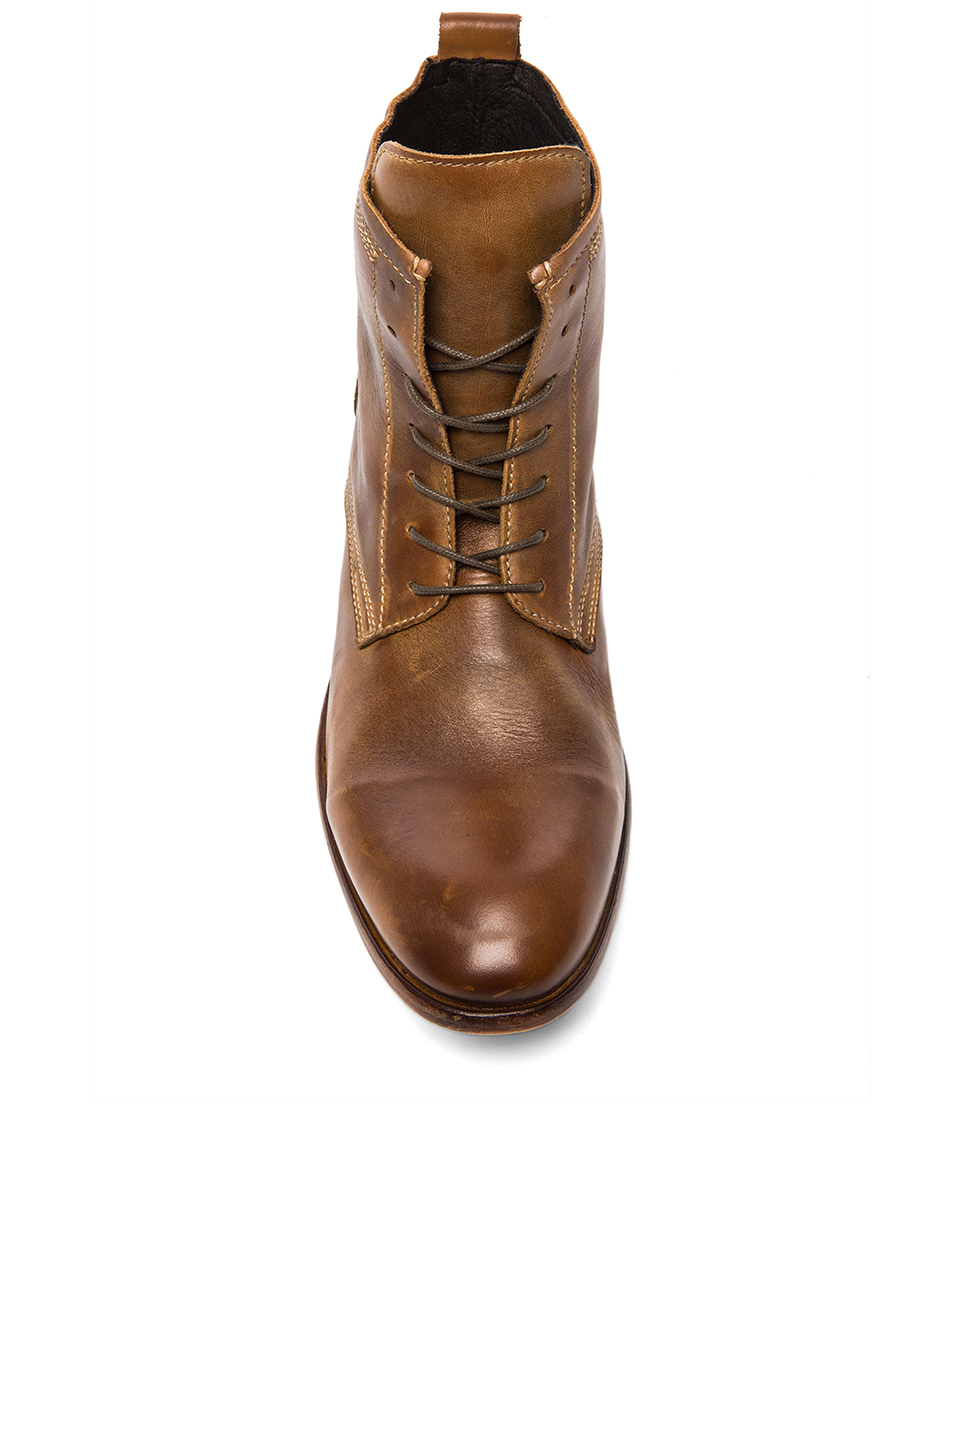 H by Hudson Swathmore Boot in Tan